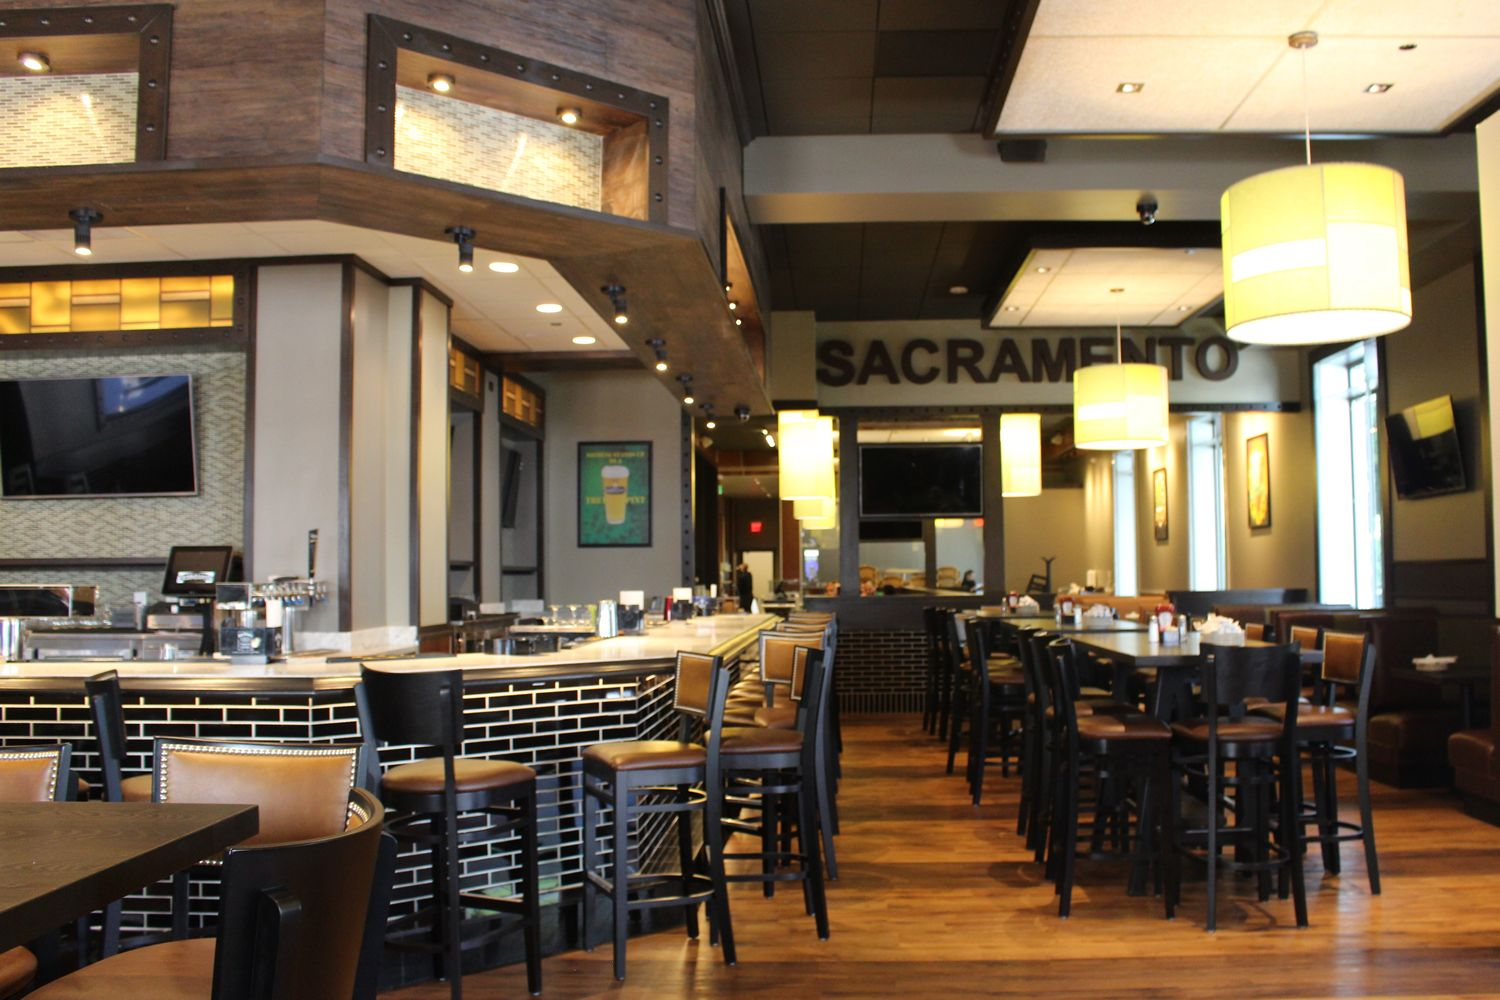 Sacramento To Welcome Its 1st Bennigan's